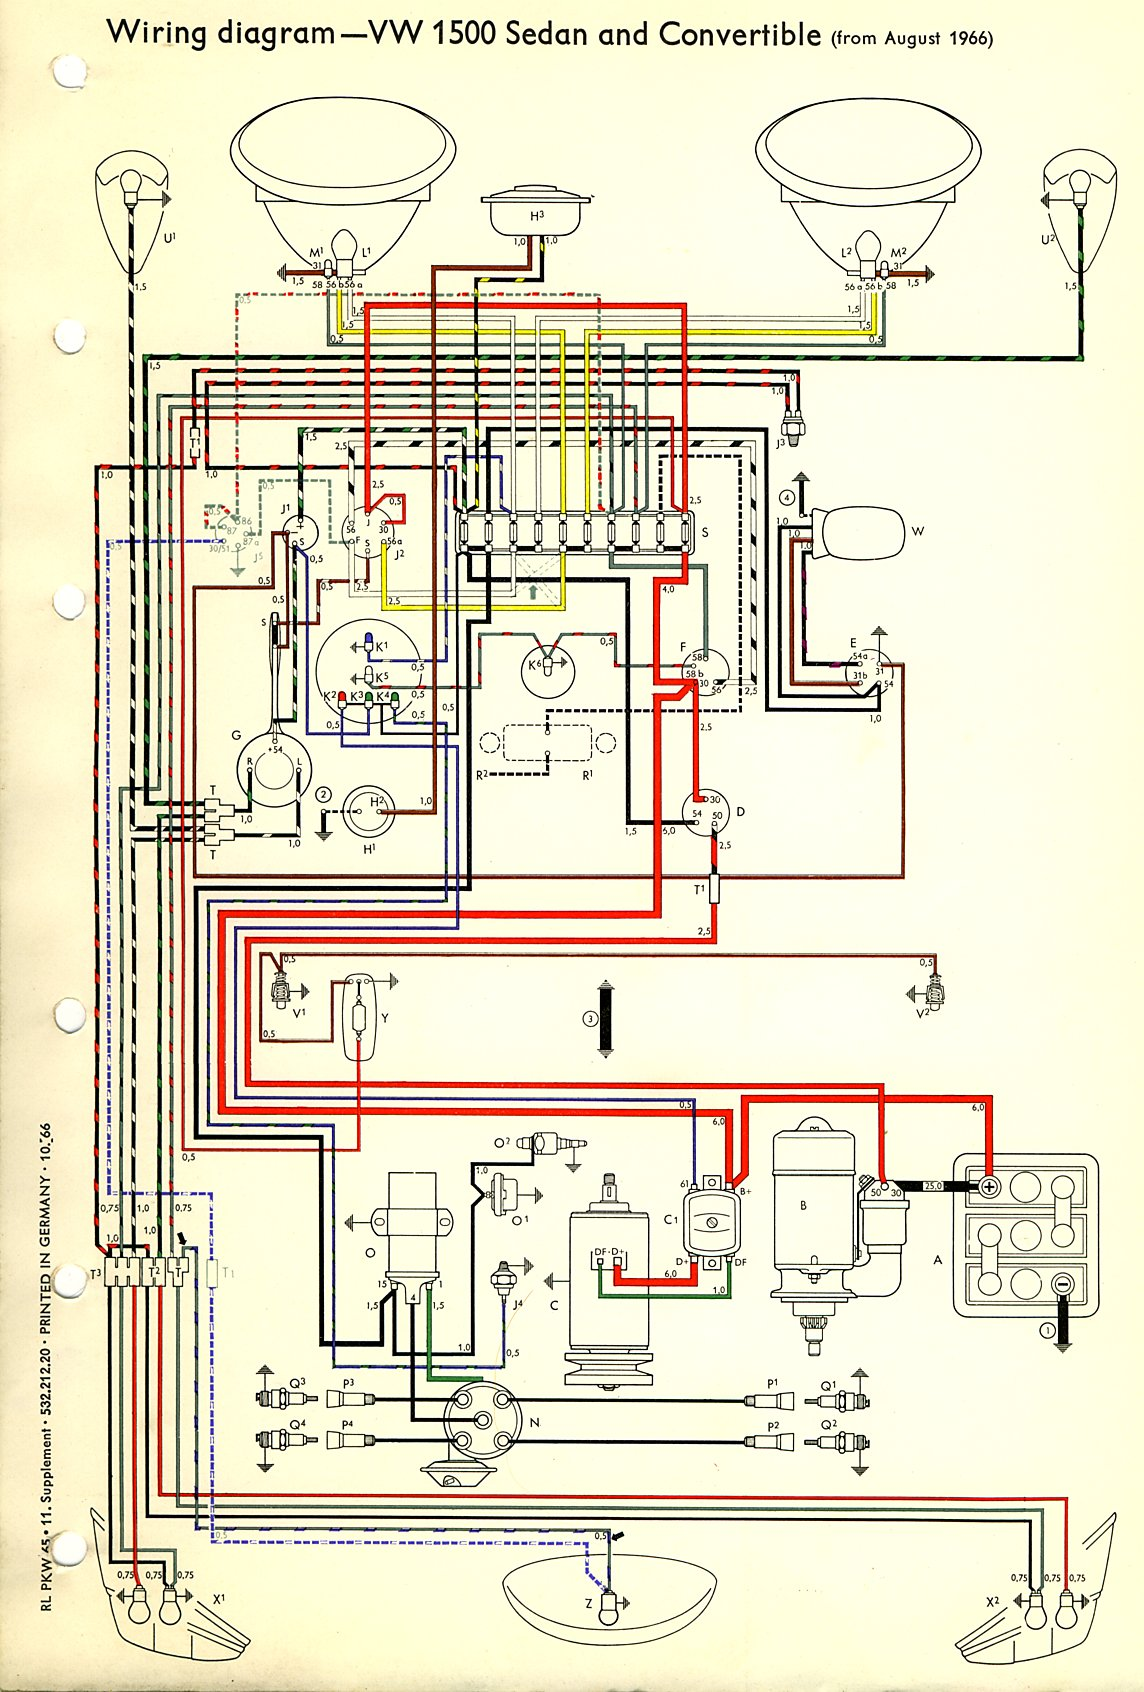 Wiring Diagram For 1967 Vw Beetle : Beetle wiring diagram thegoldenbug